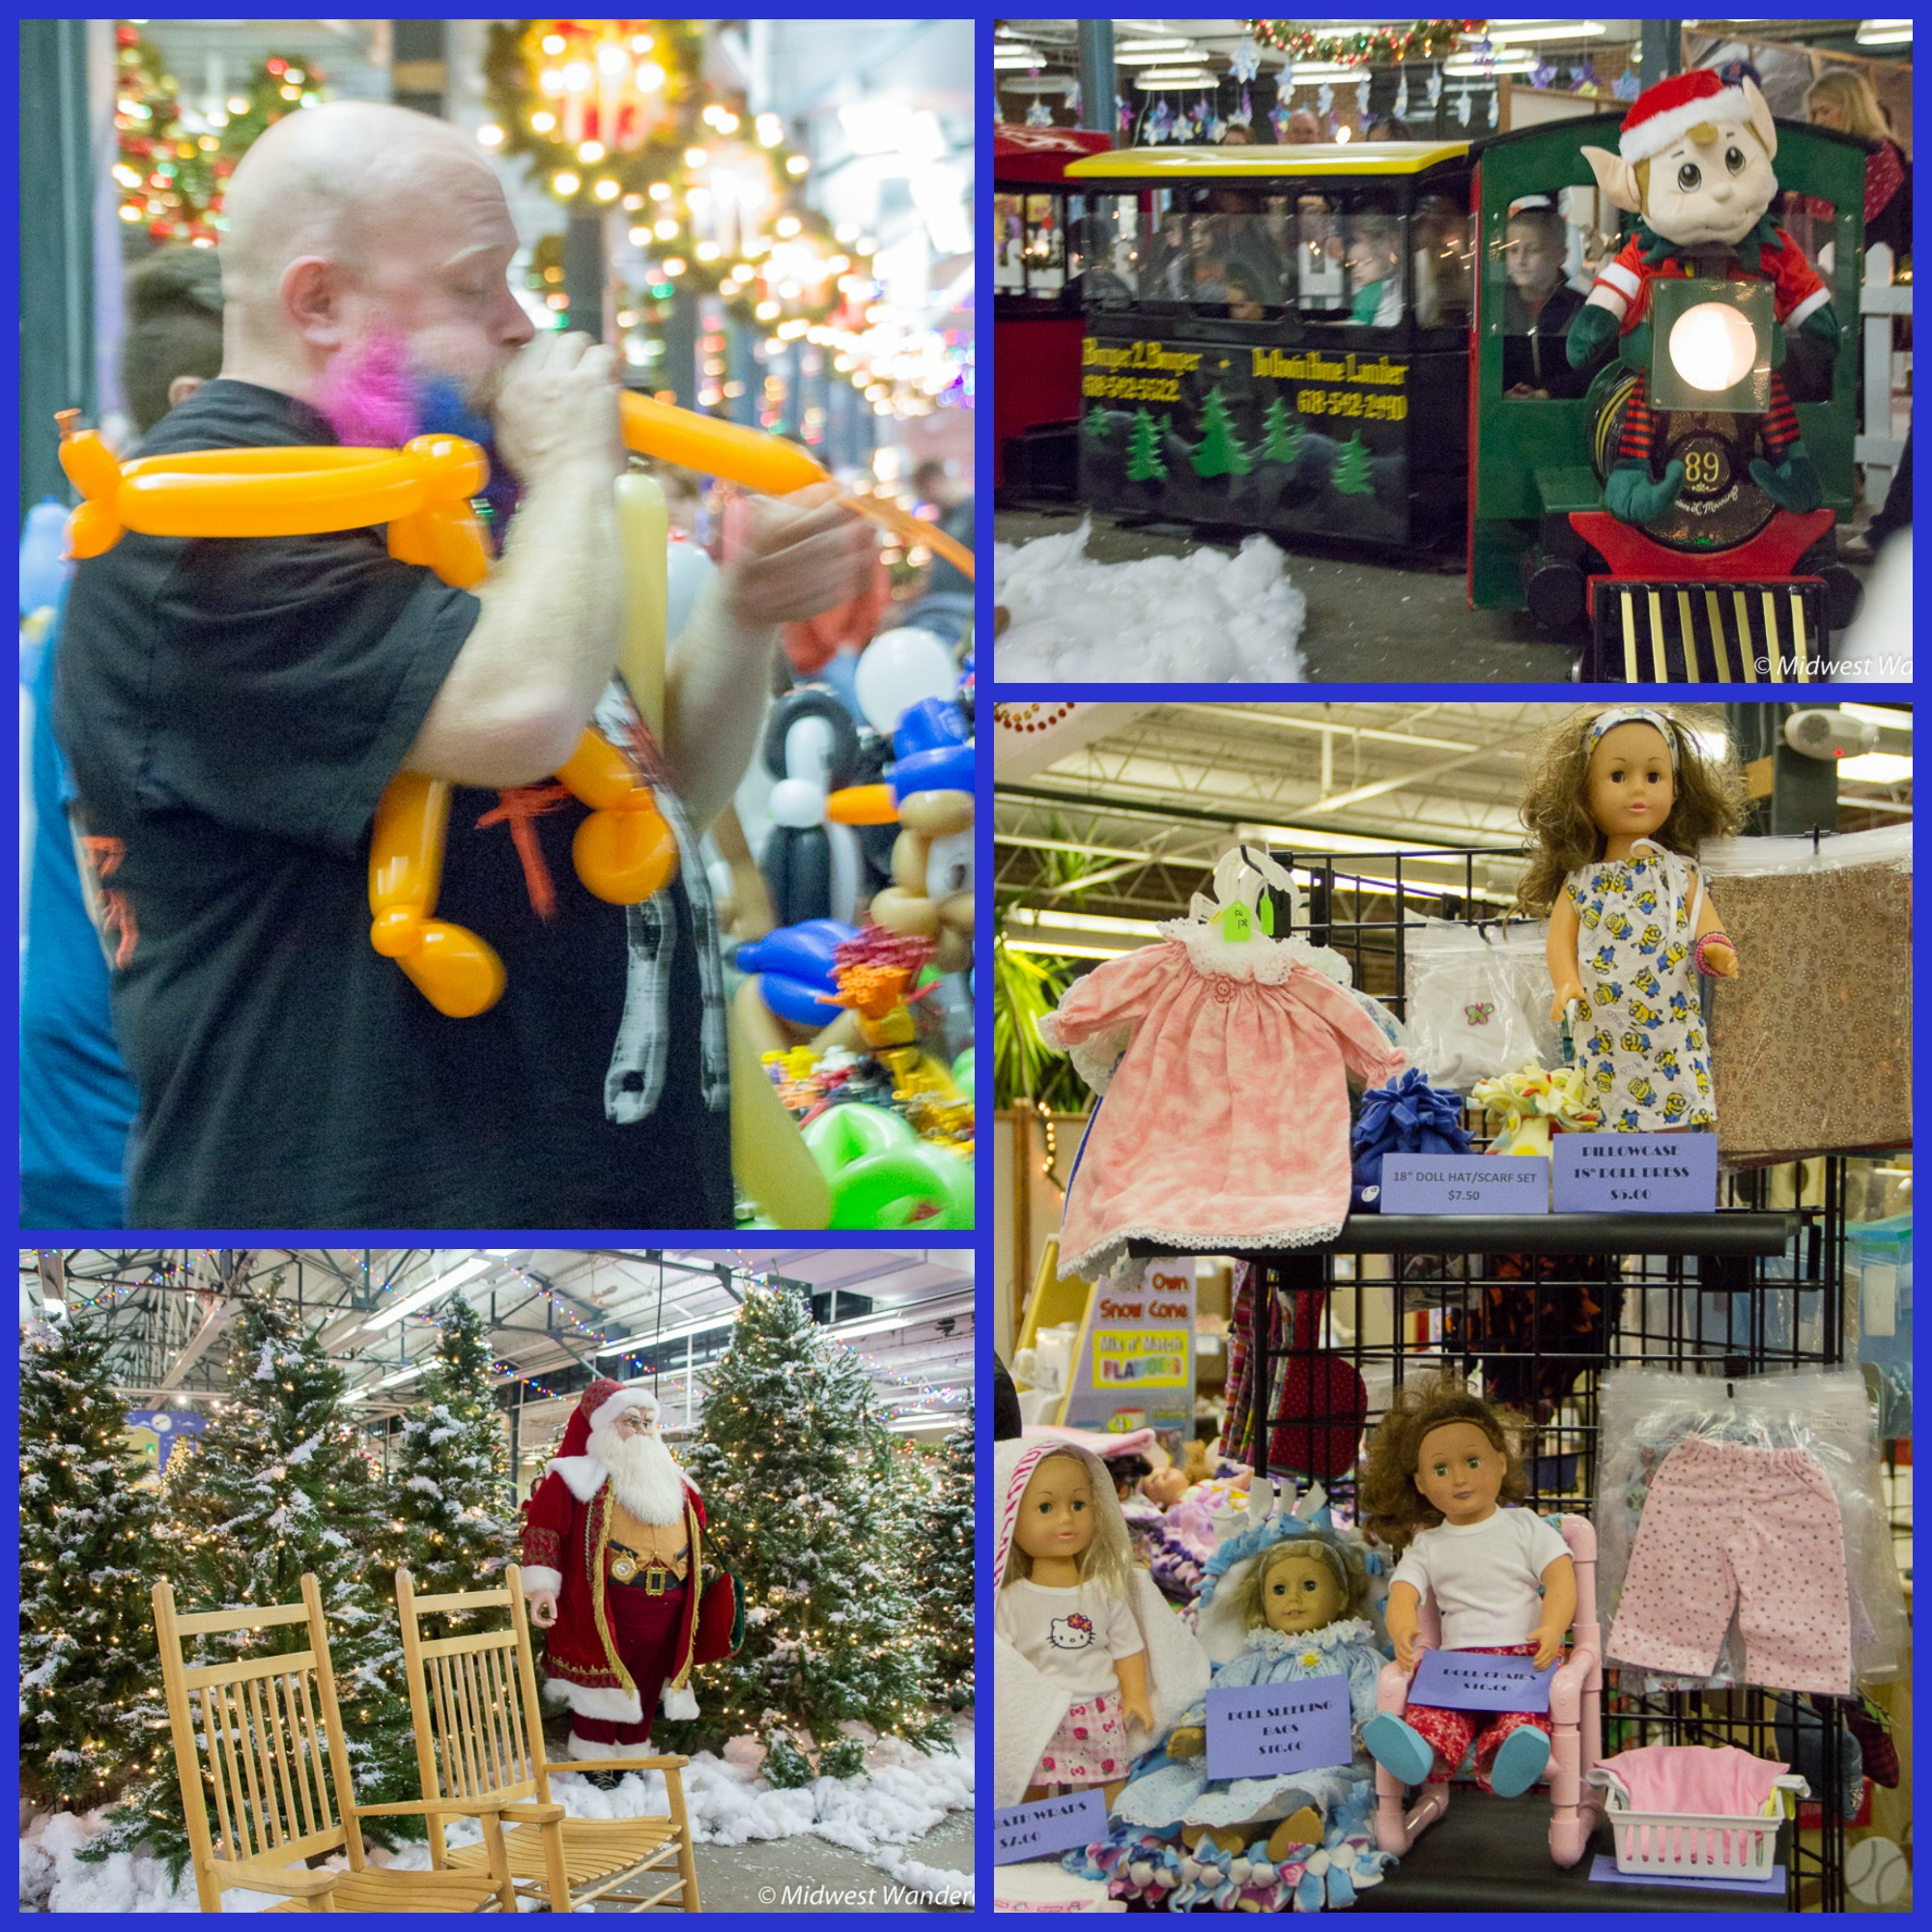 Du Quoin Holiday Lights Fair - indoors